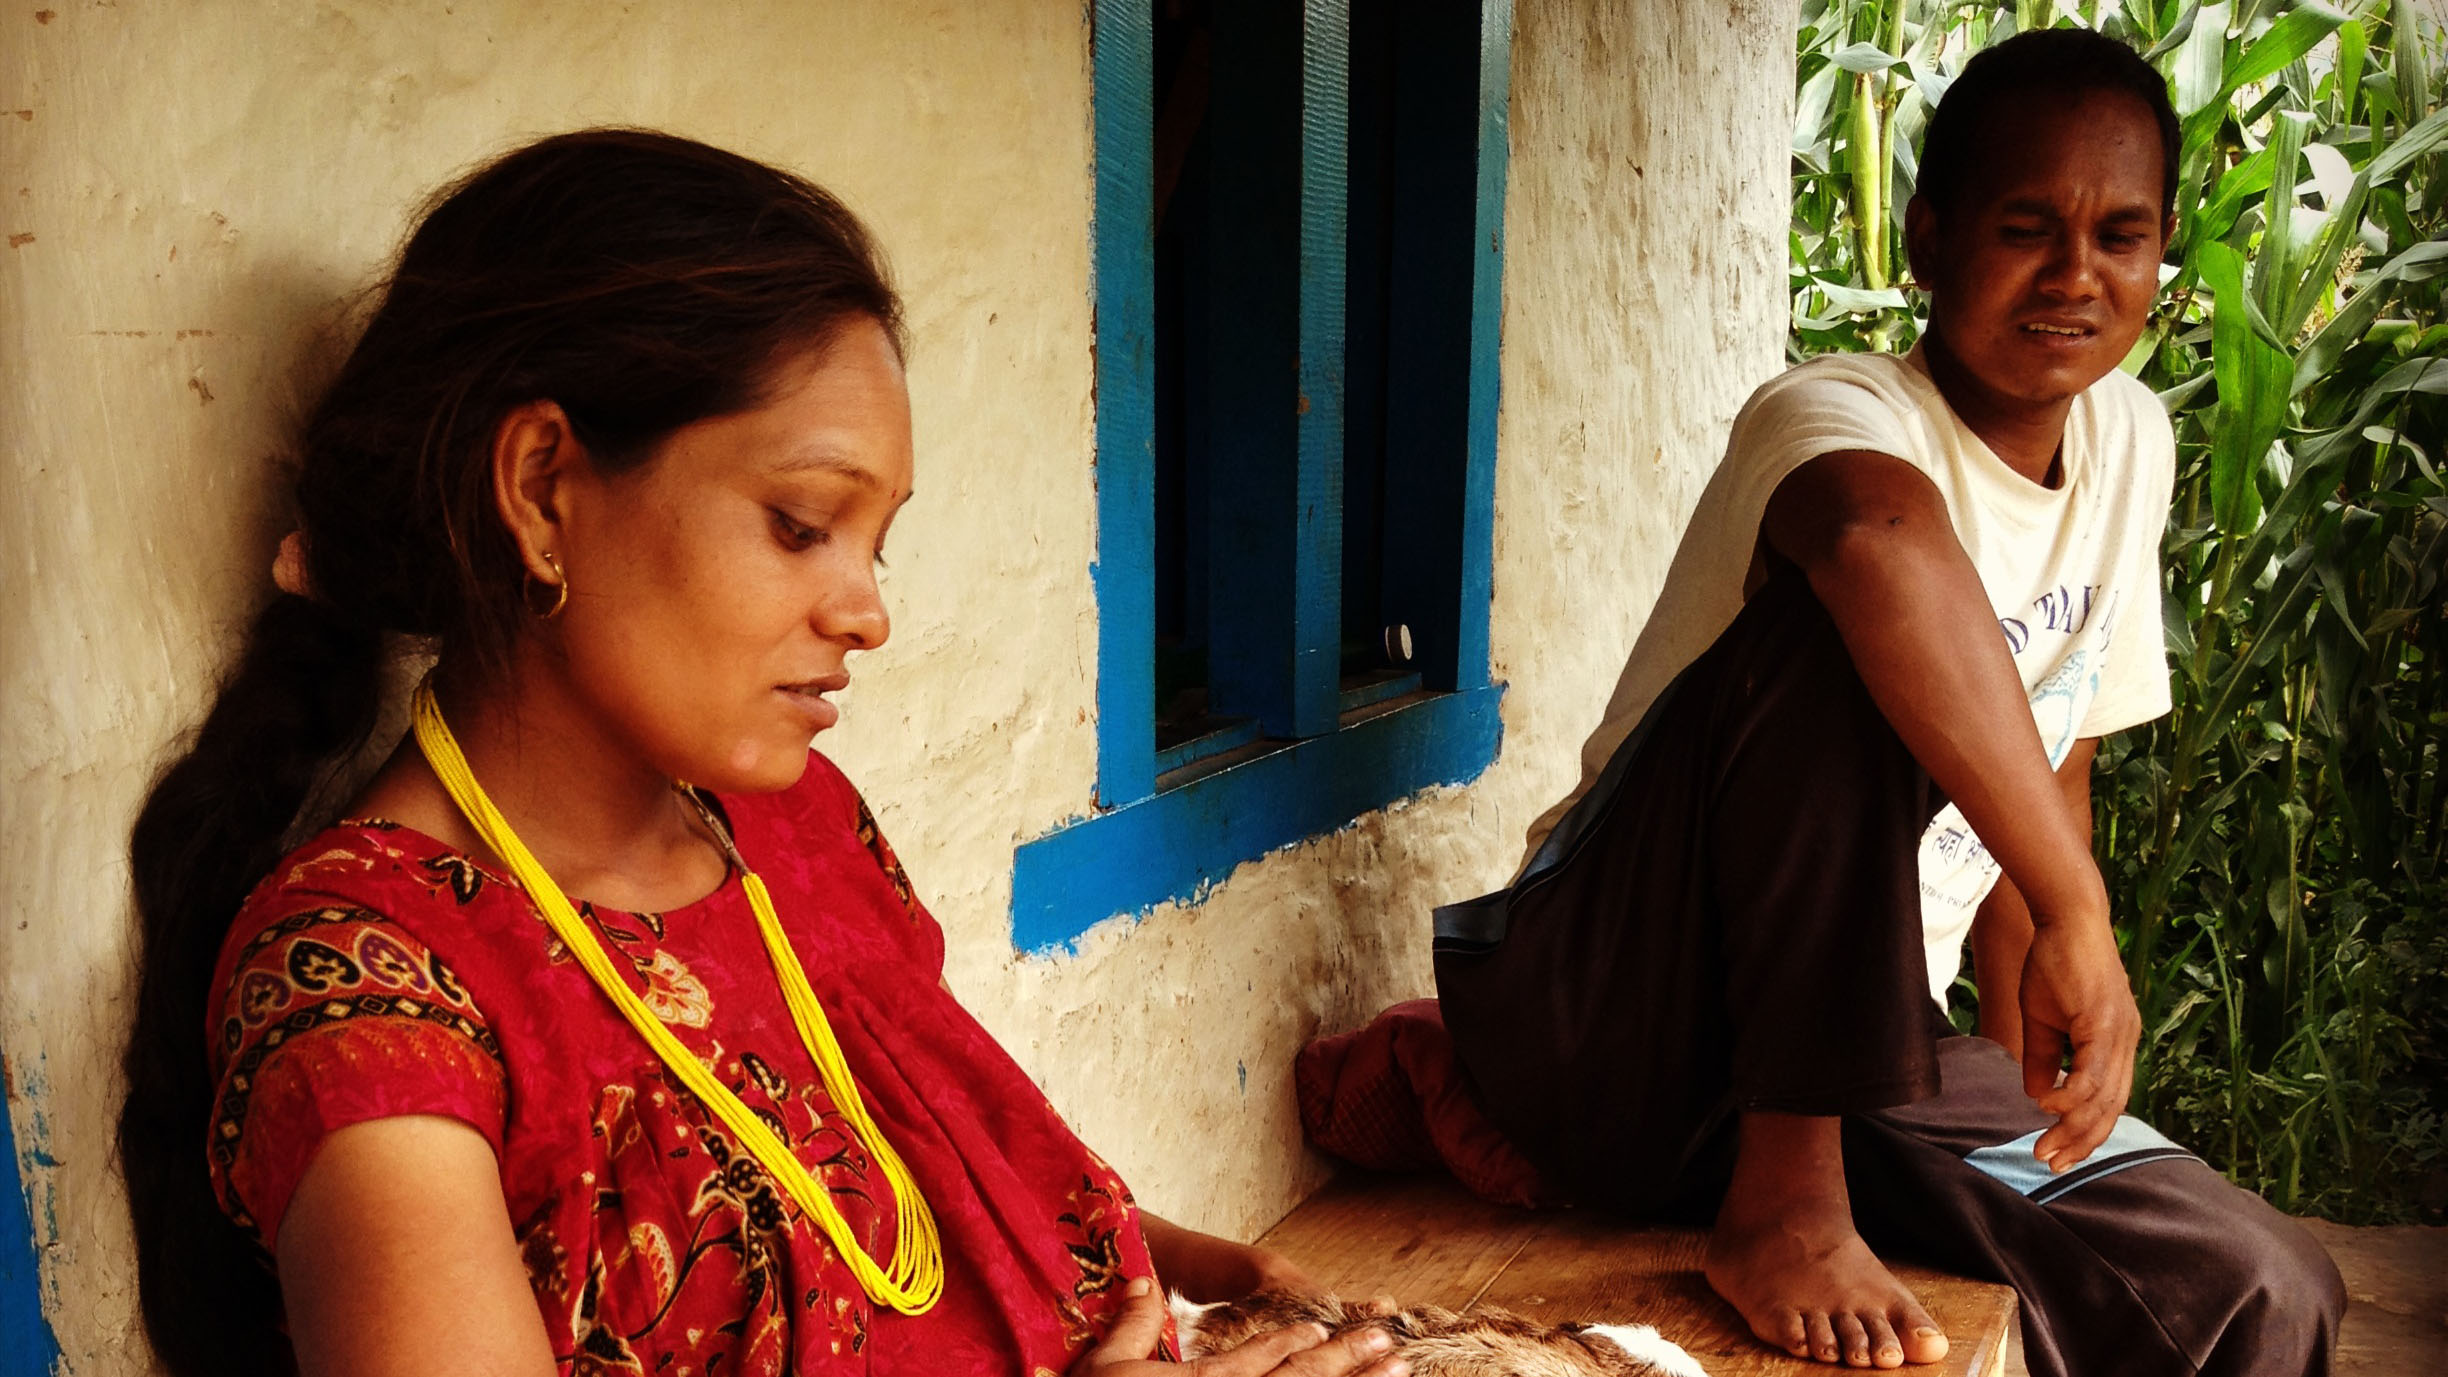 in the manual labor doesn t stop for expectant mothers januka rasaeli s husband madhav returned to the village to help his wife like many i men he couldn t work locally and had to work abroad